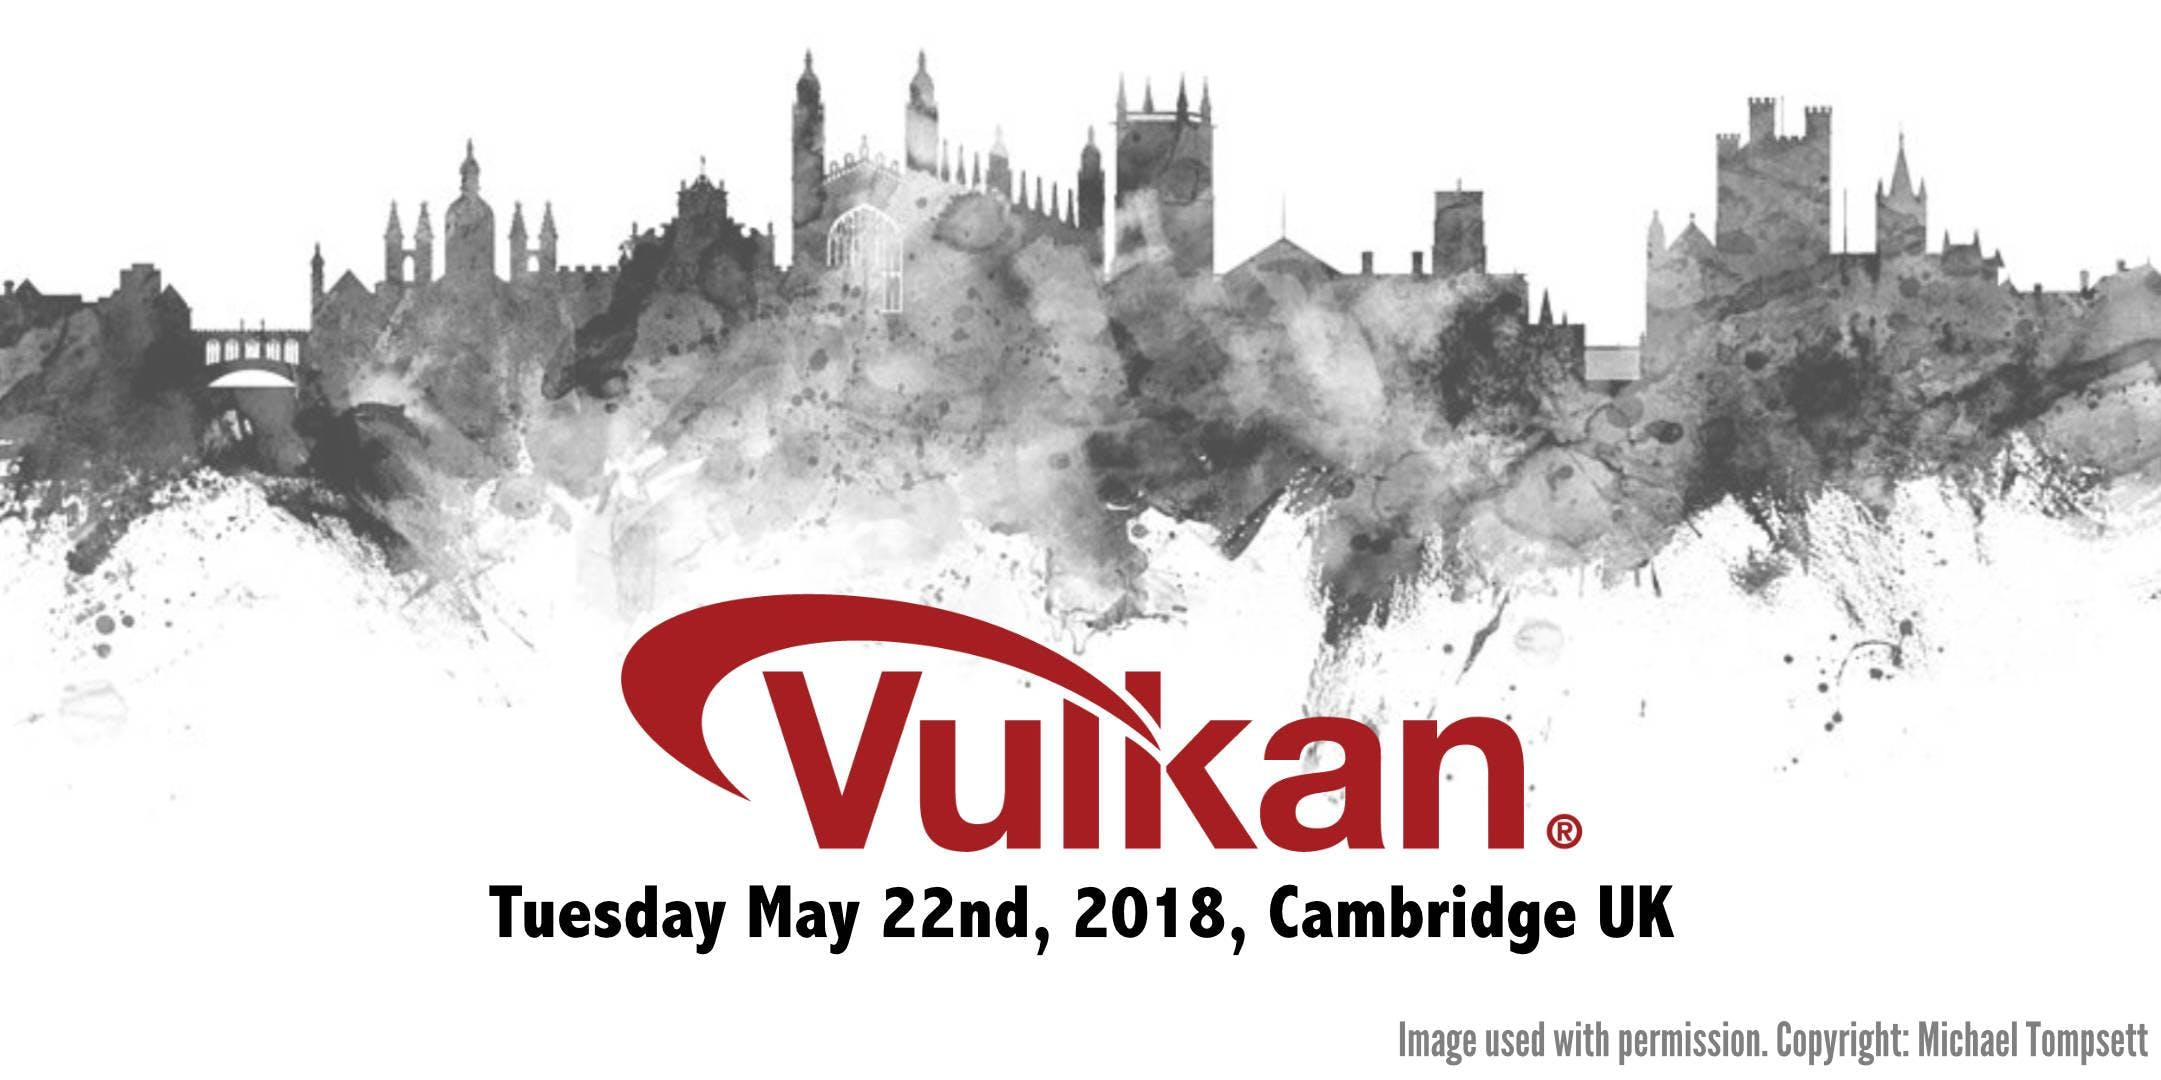 Vulkanised is back! Get the latest updates fr